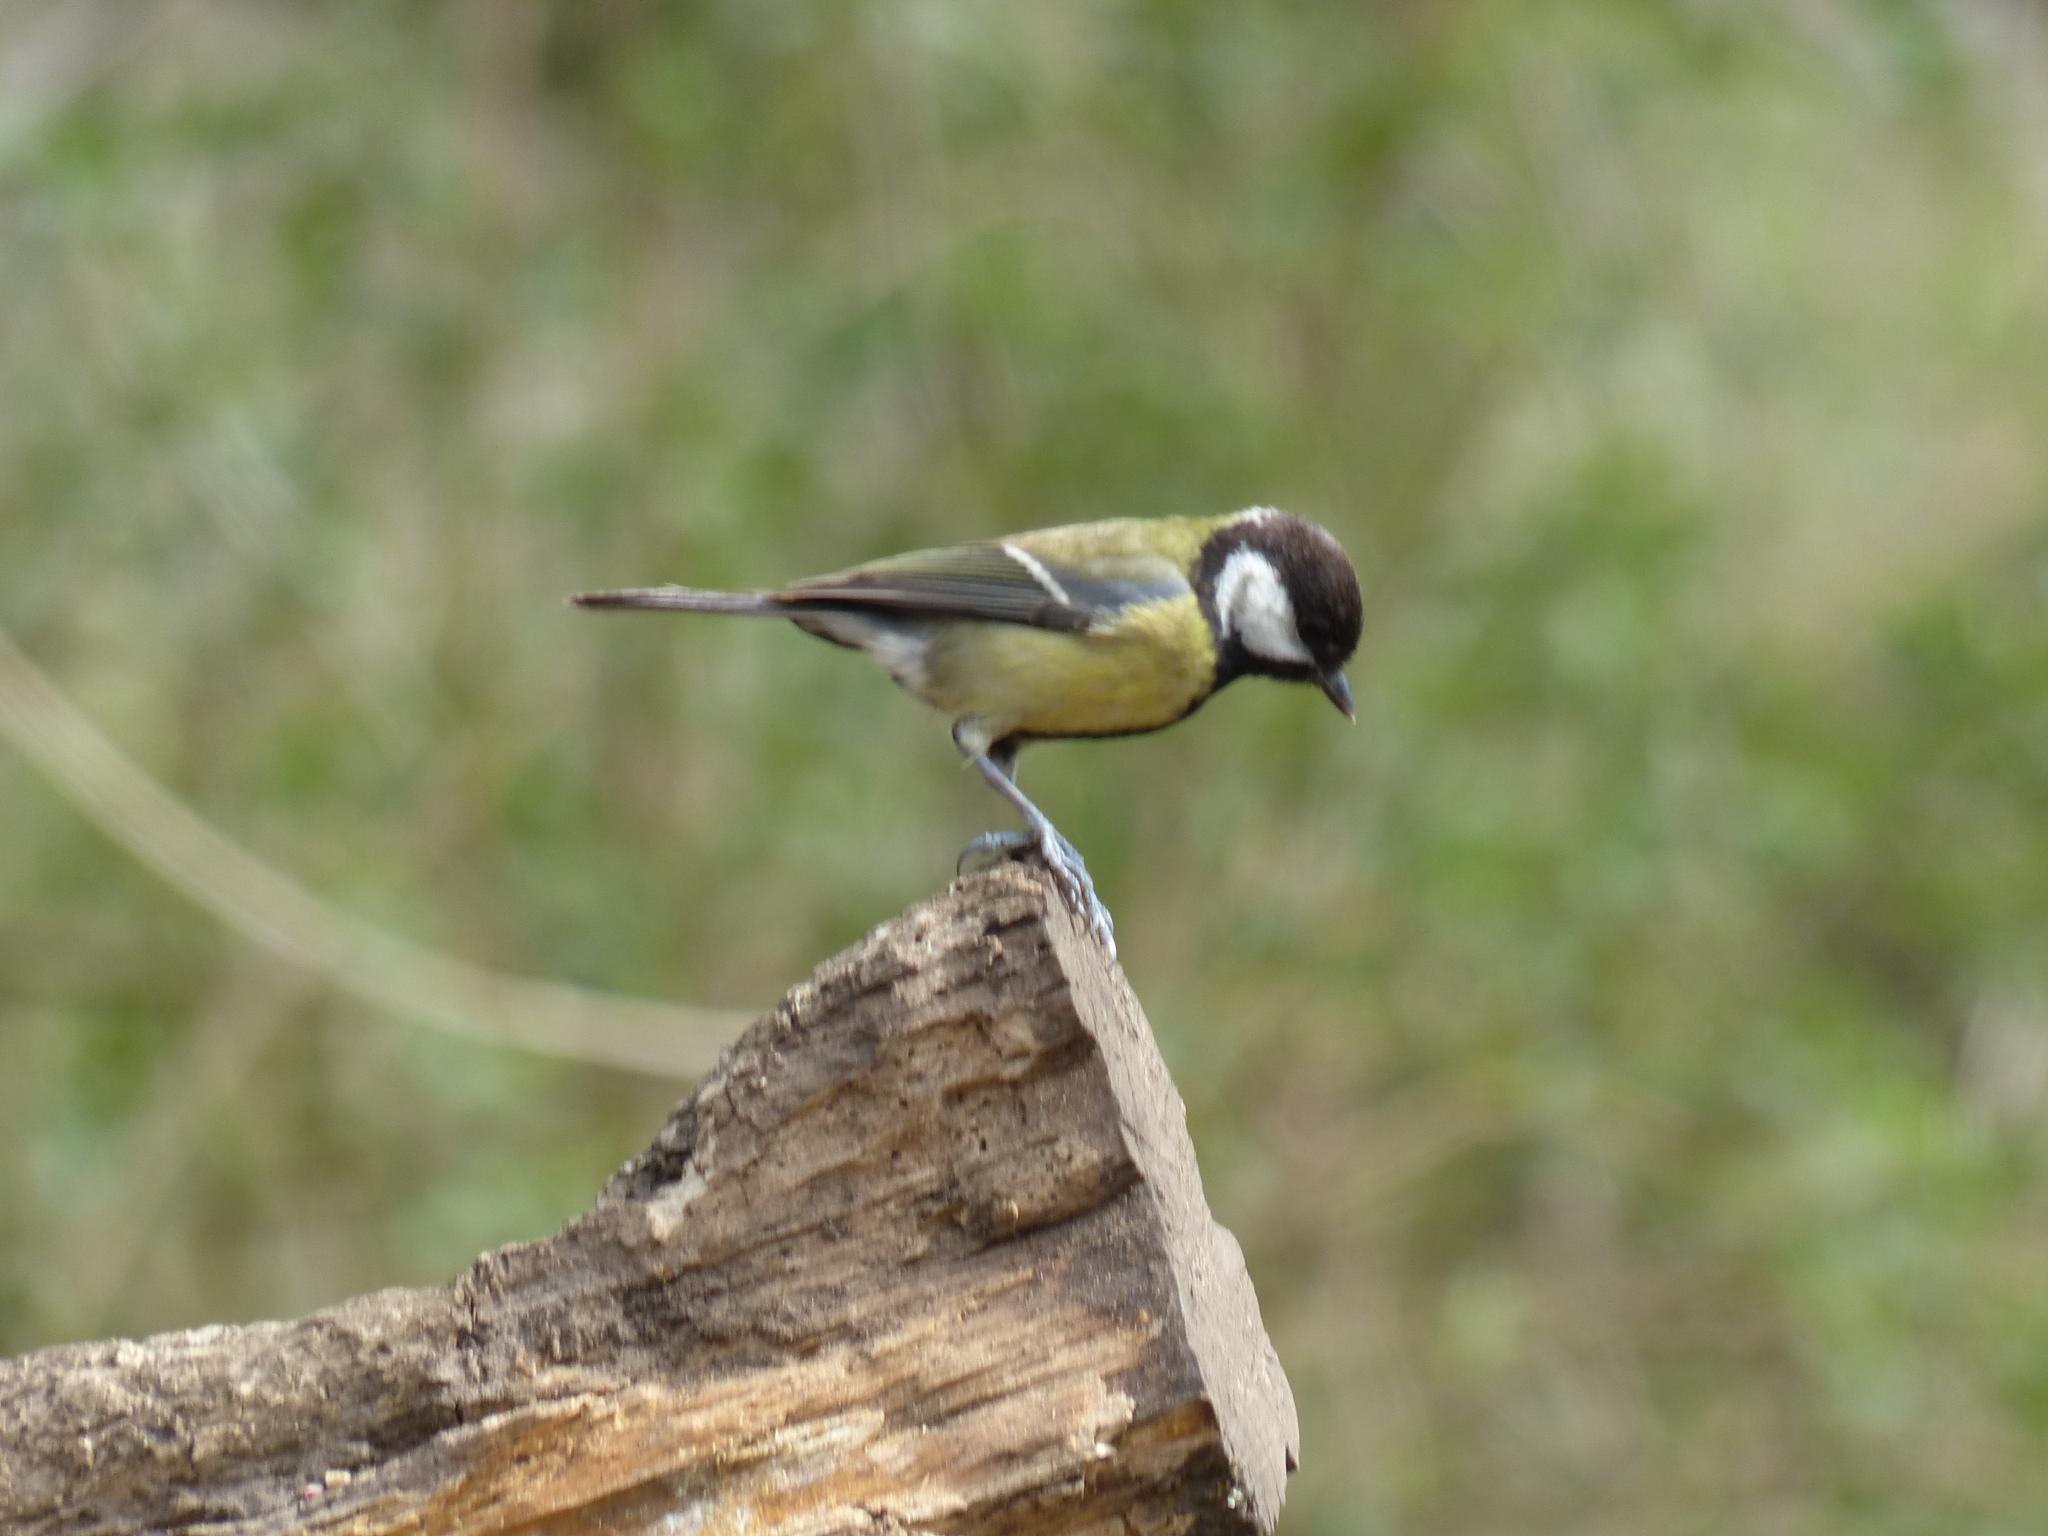 Great Tit on the Edge by wendy.west.9212